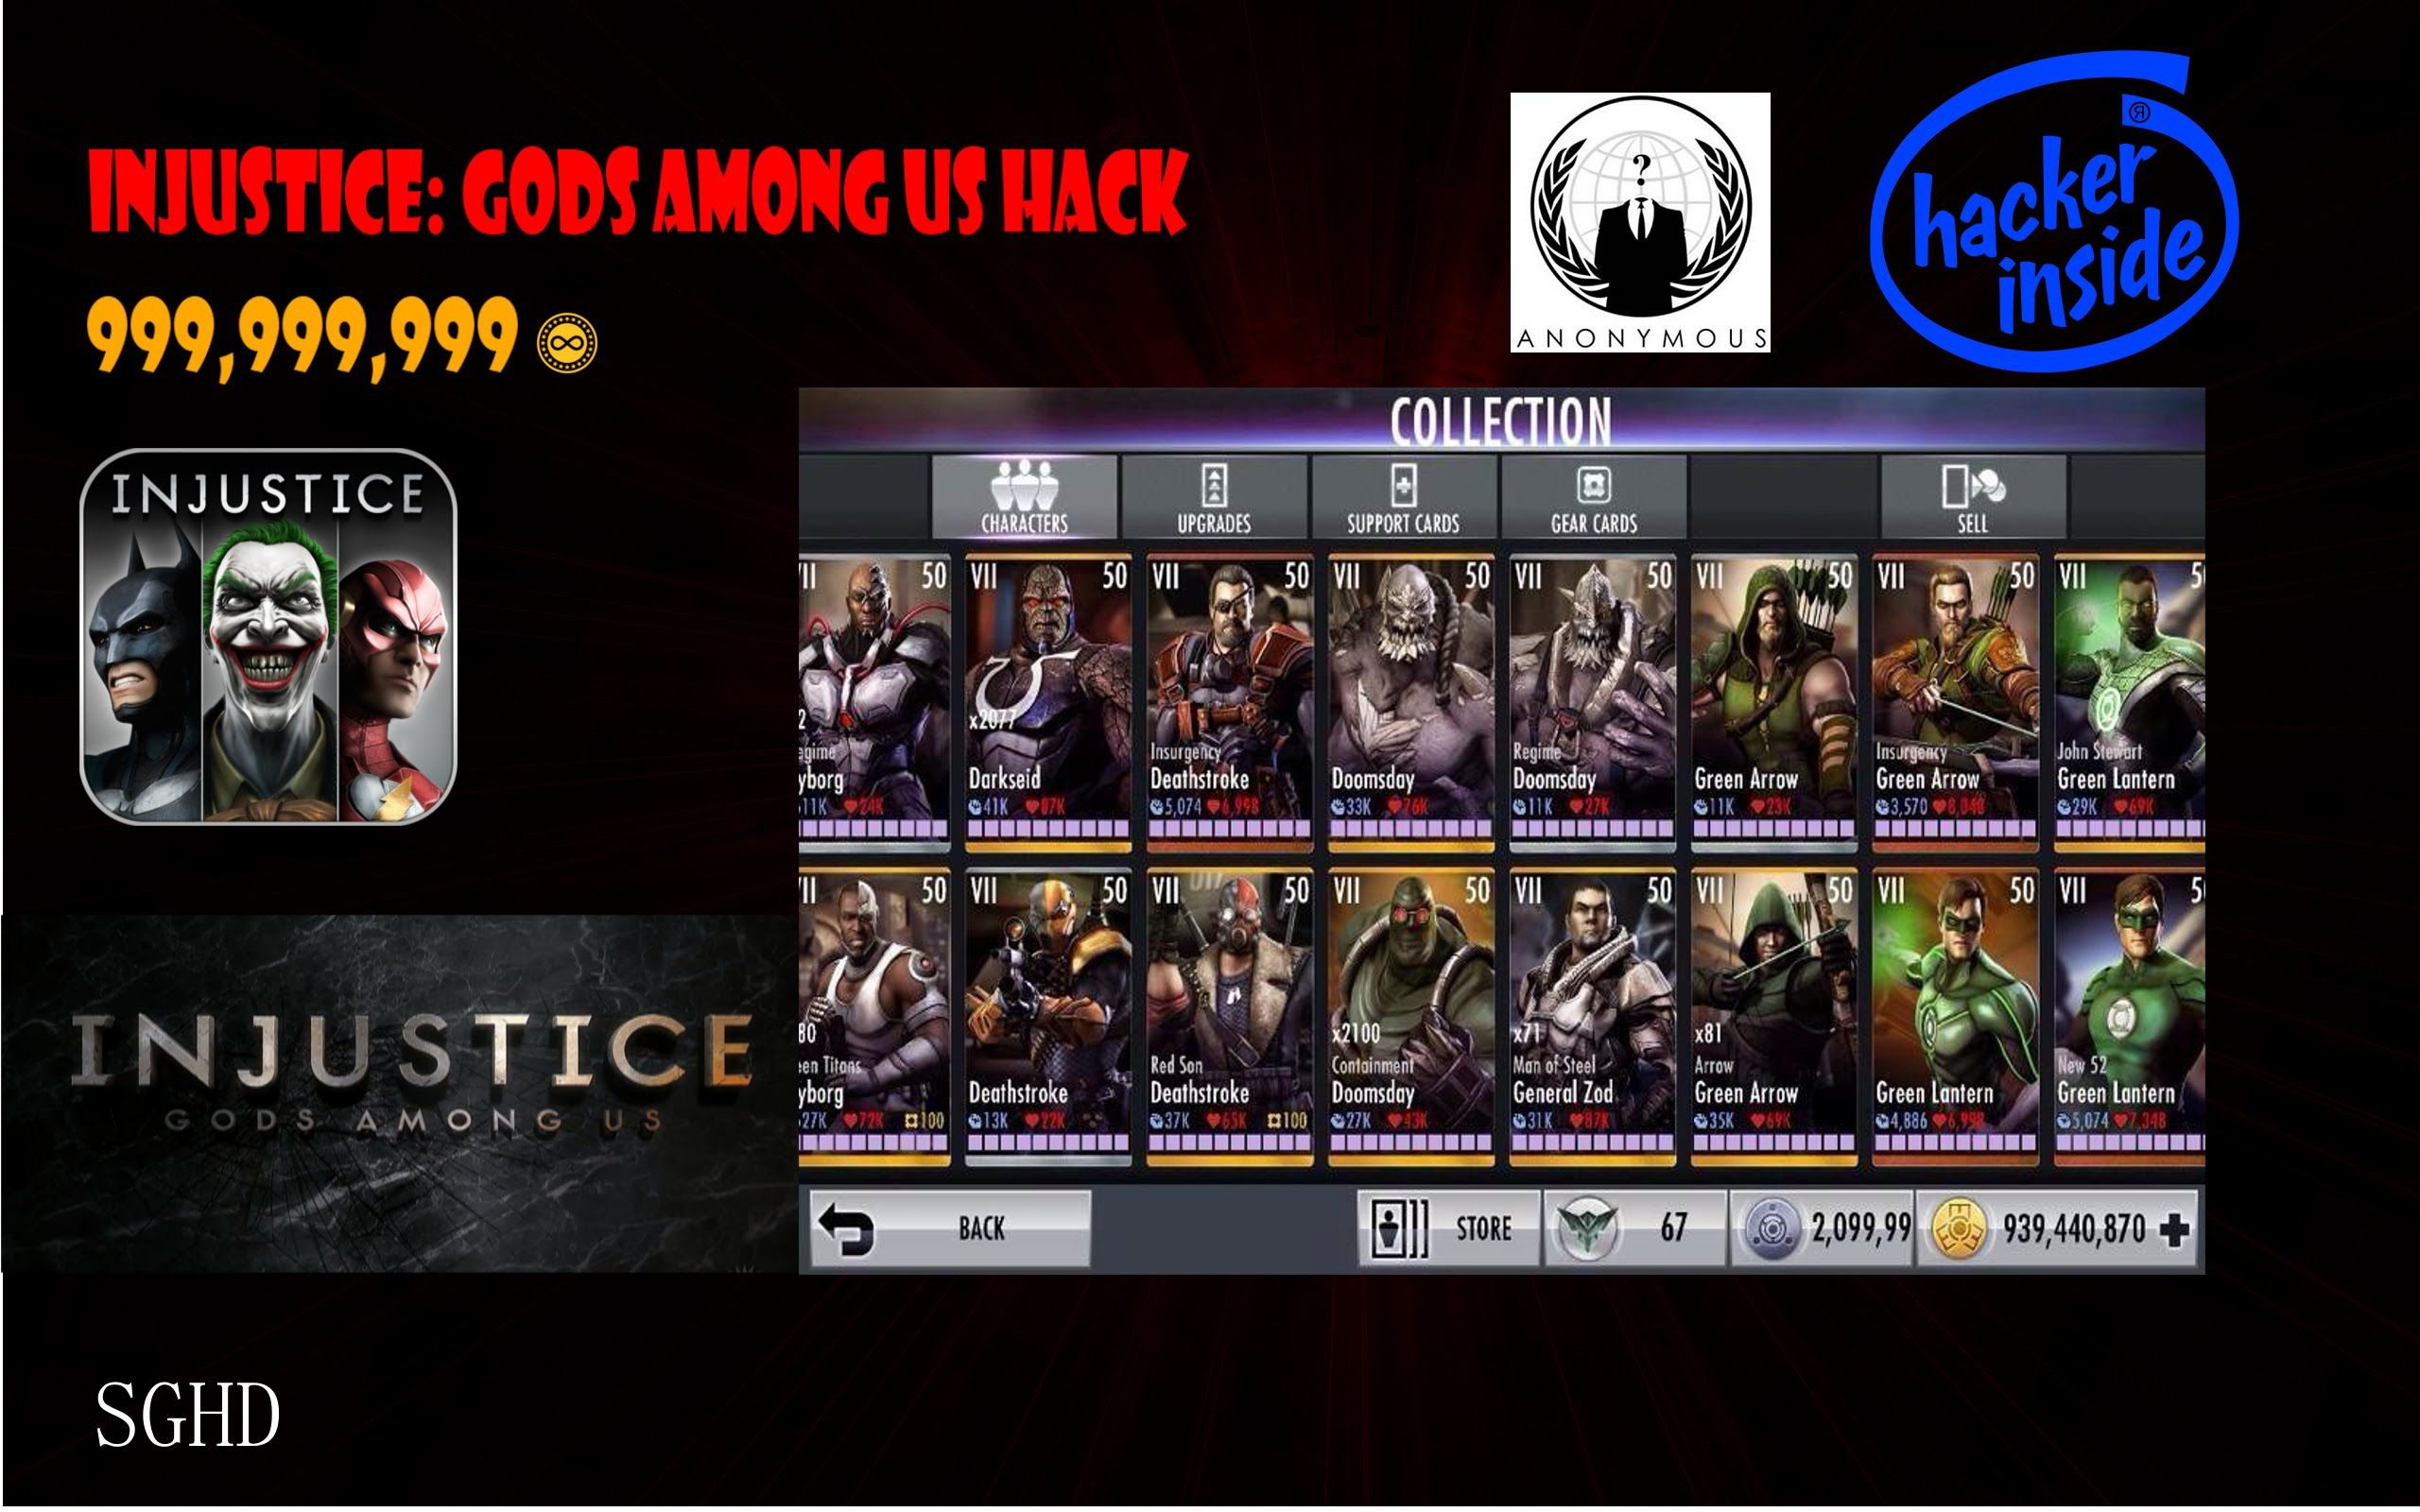 Injustice Gods Among Us Hack Apk Get 9999999 Power Energy Unlock All Characters And Unlock All Special Costumes No Survey Injustice Hack Free Money Hacks